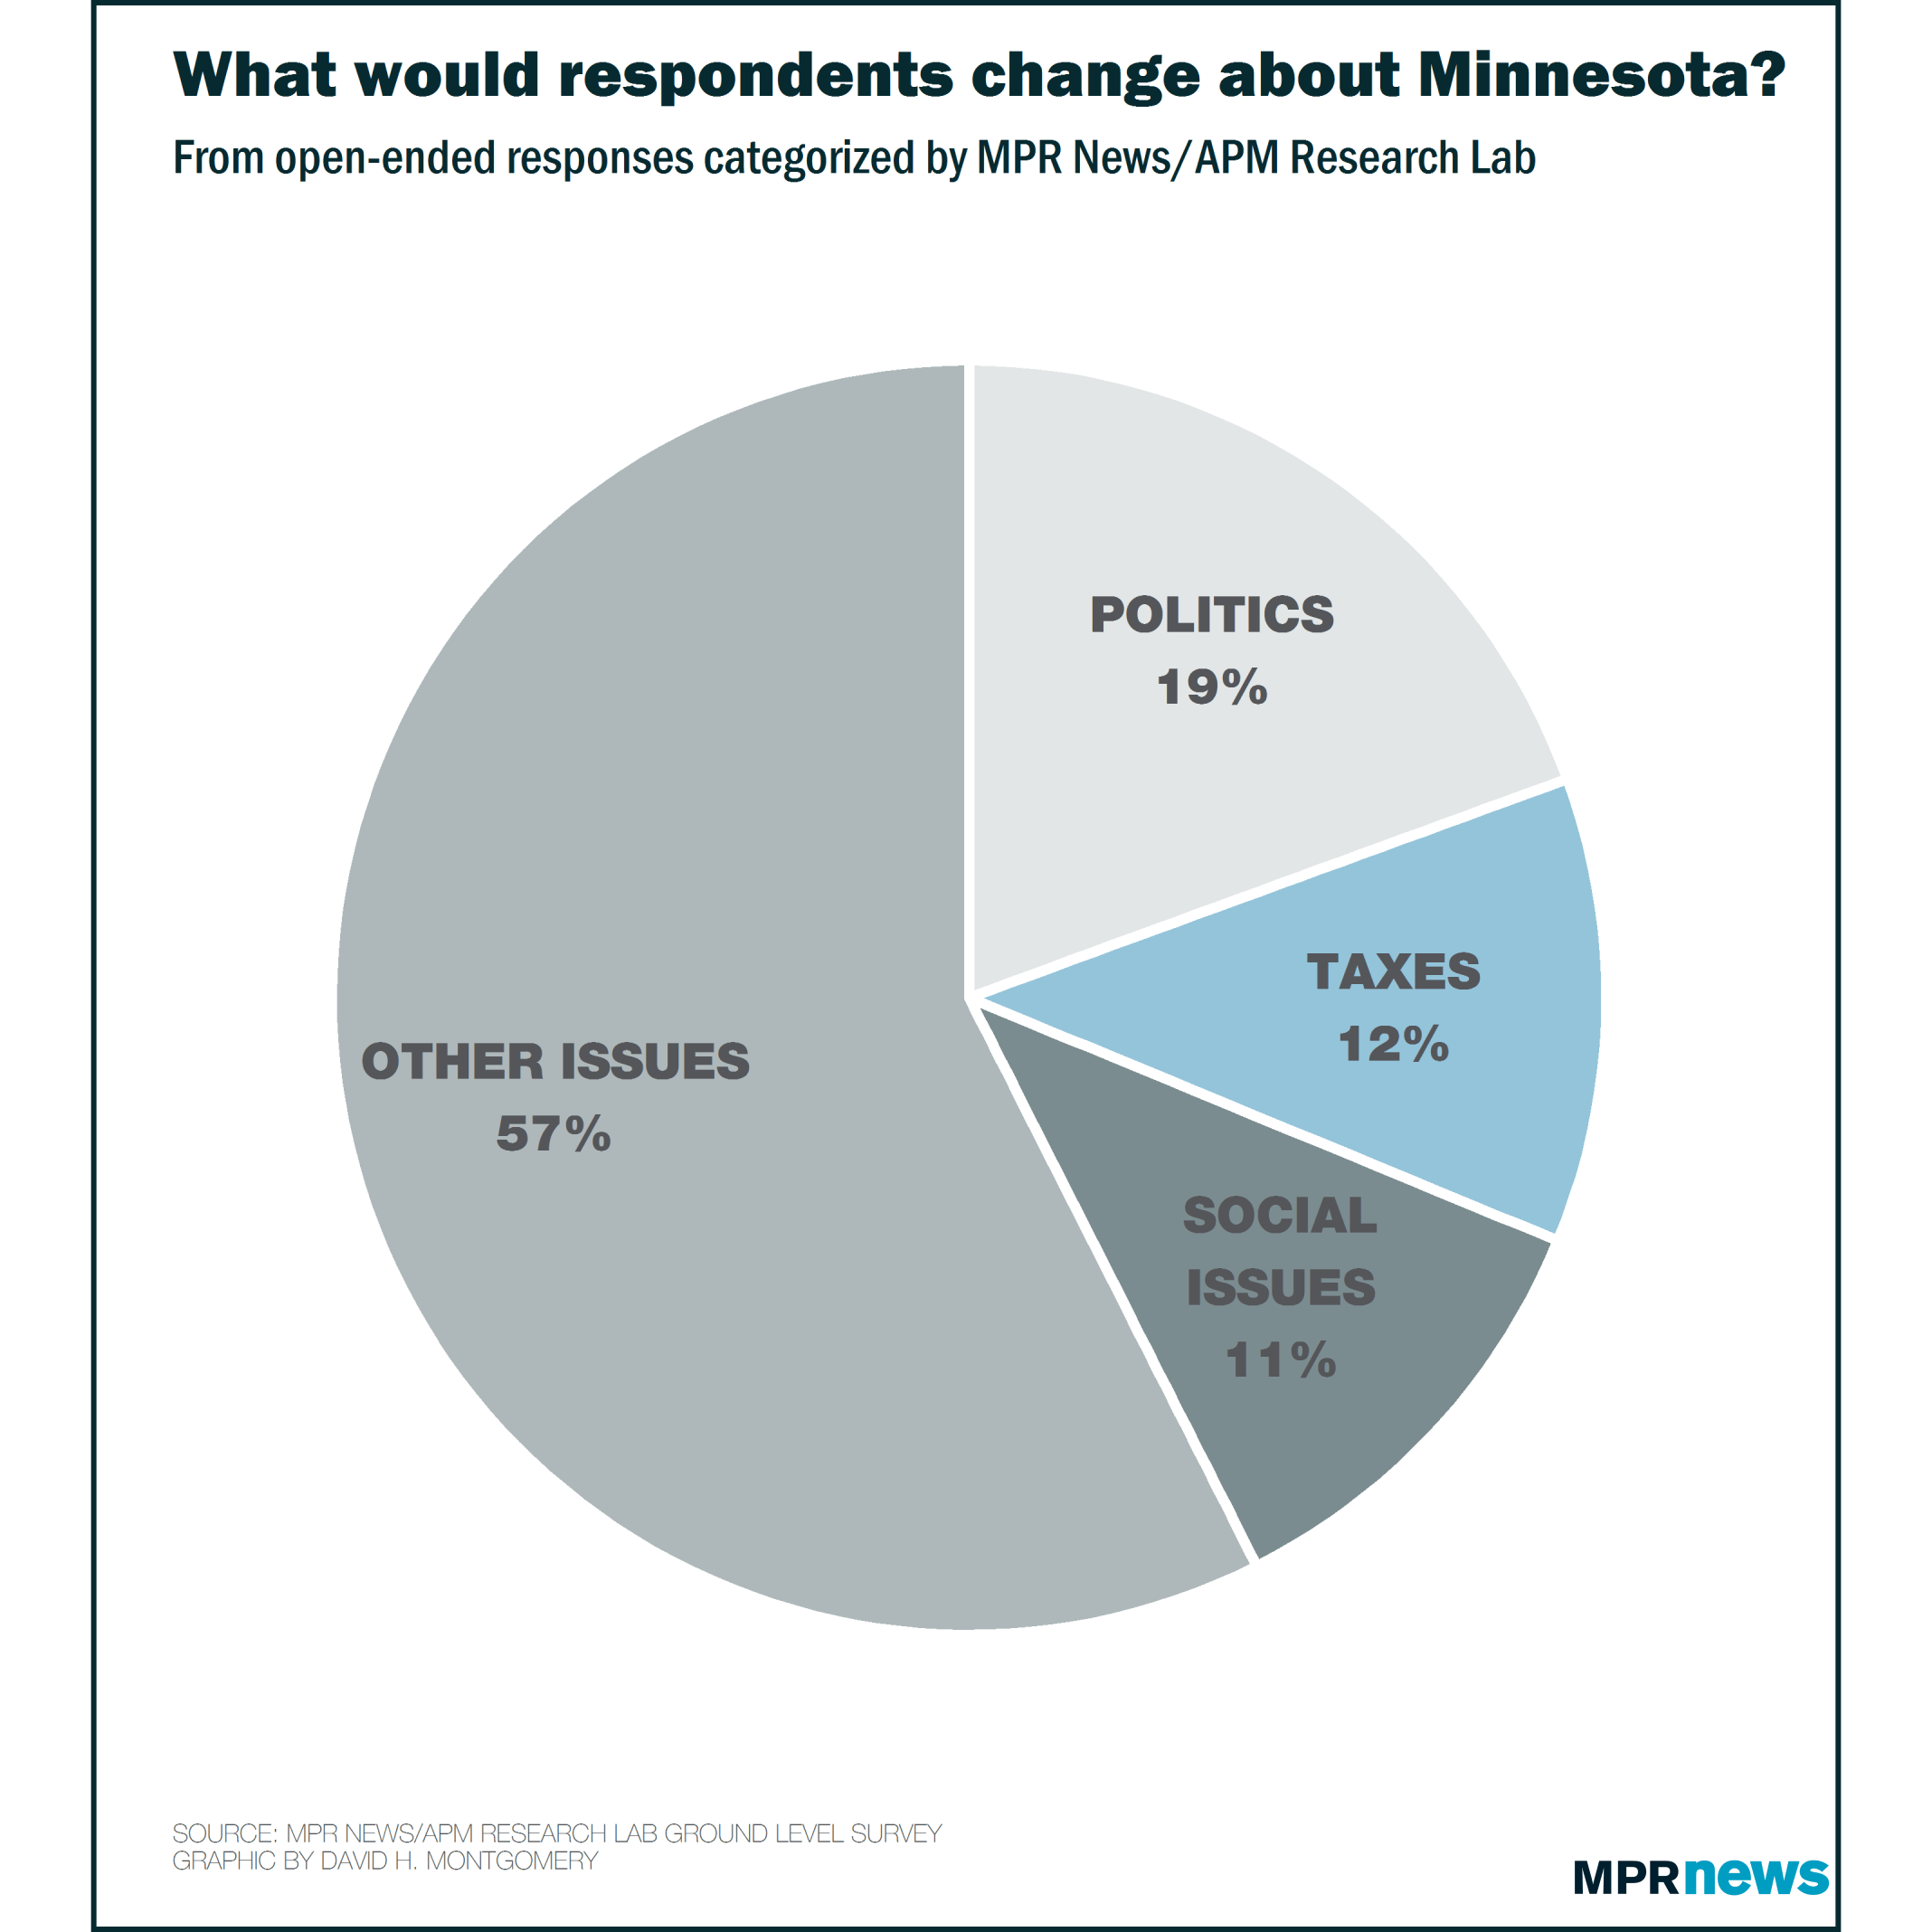 What Minnesotans would change about Minnesota